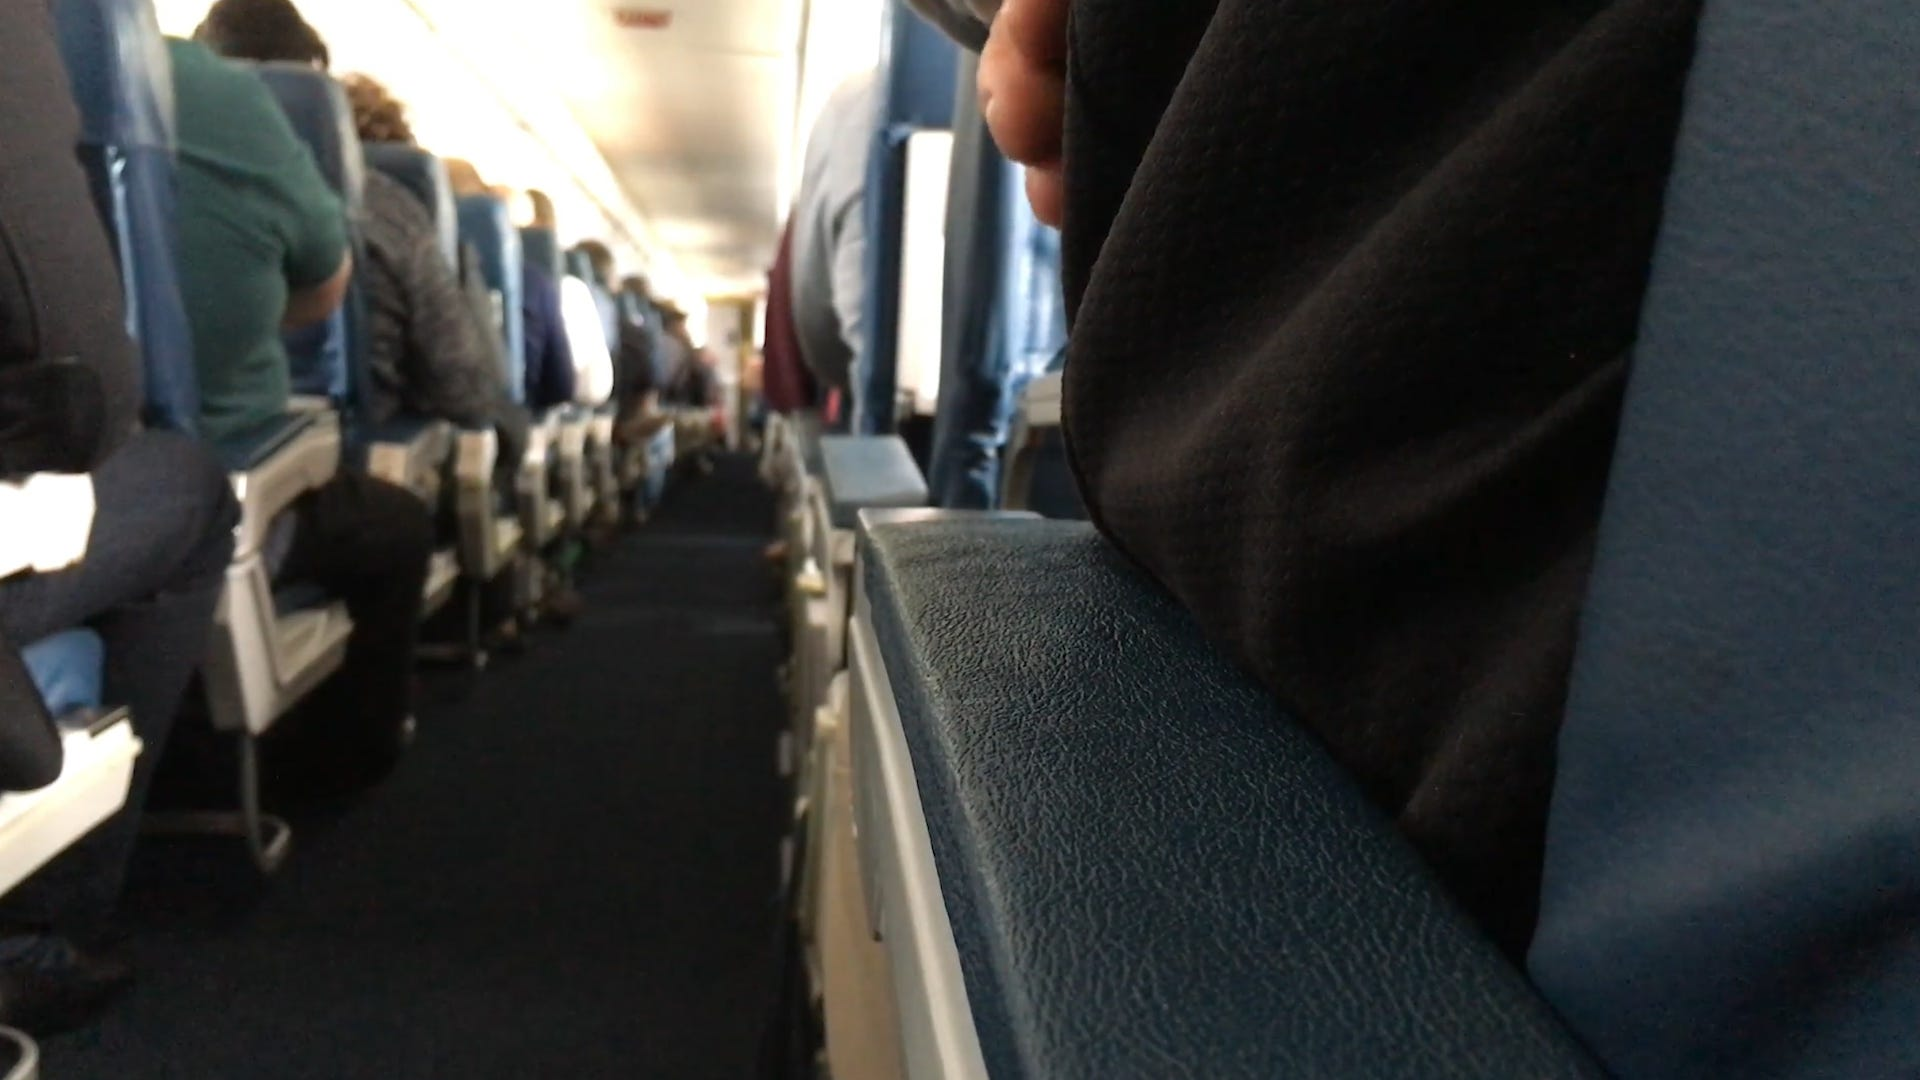 Overweight passengers a challenge for seatmates and airlines